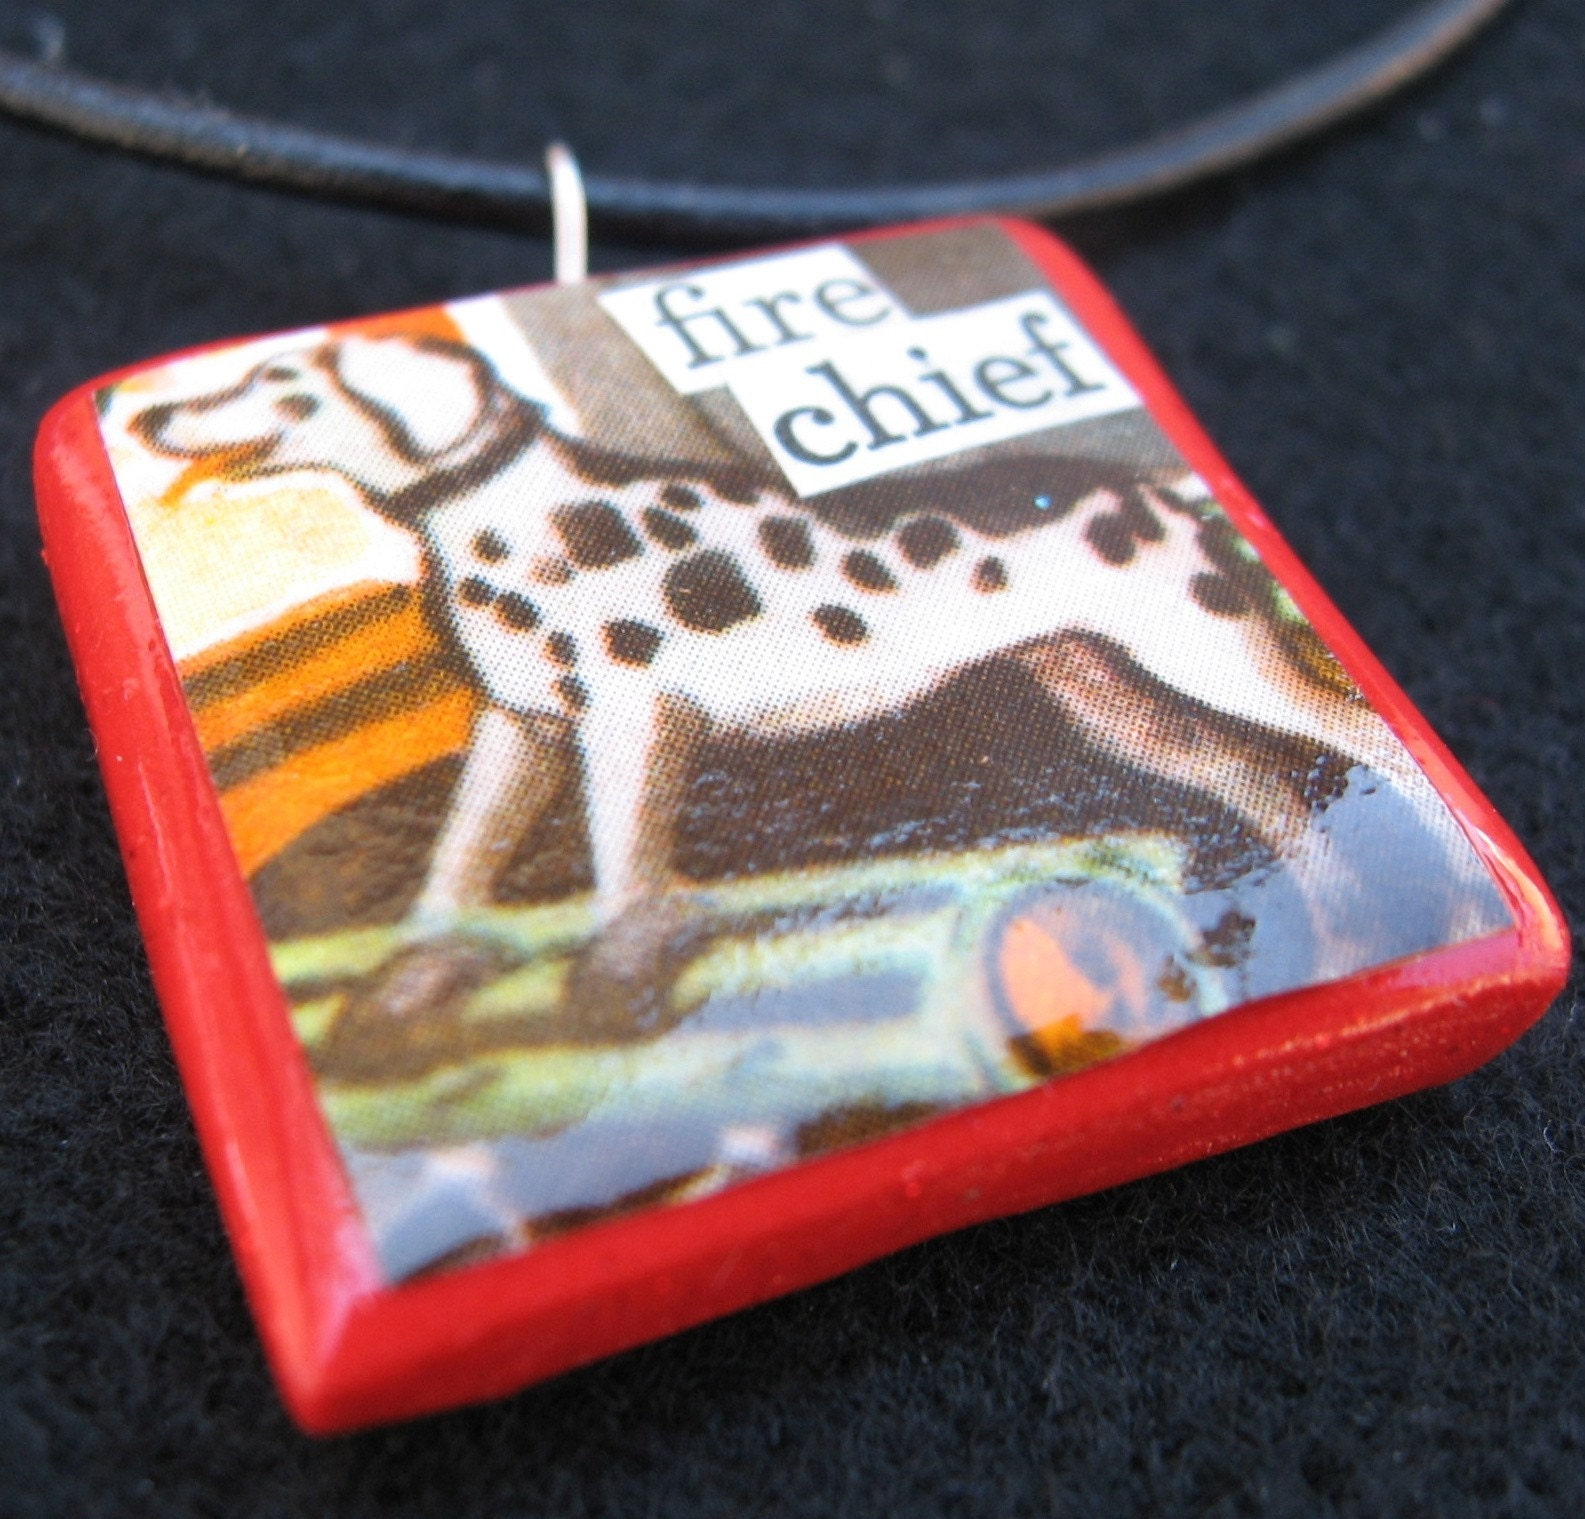 Fire Chief Dalmatian dog pendant (on leather cord)